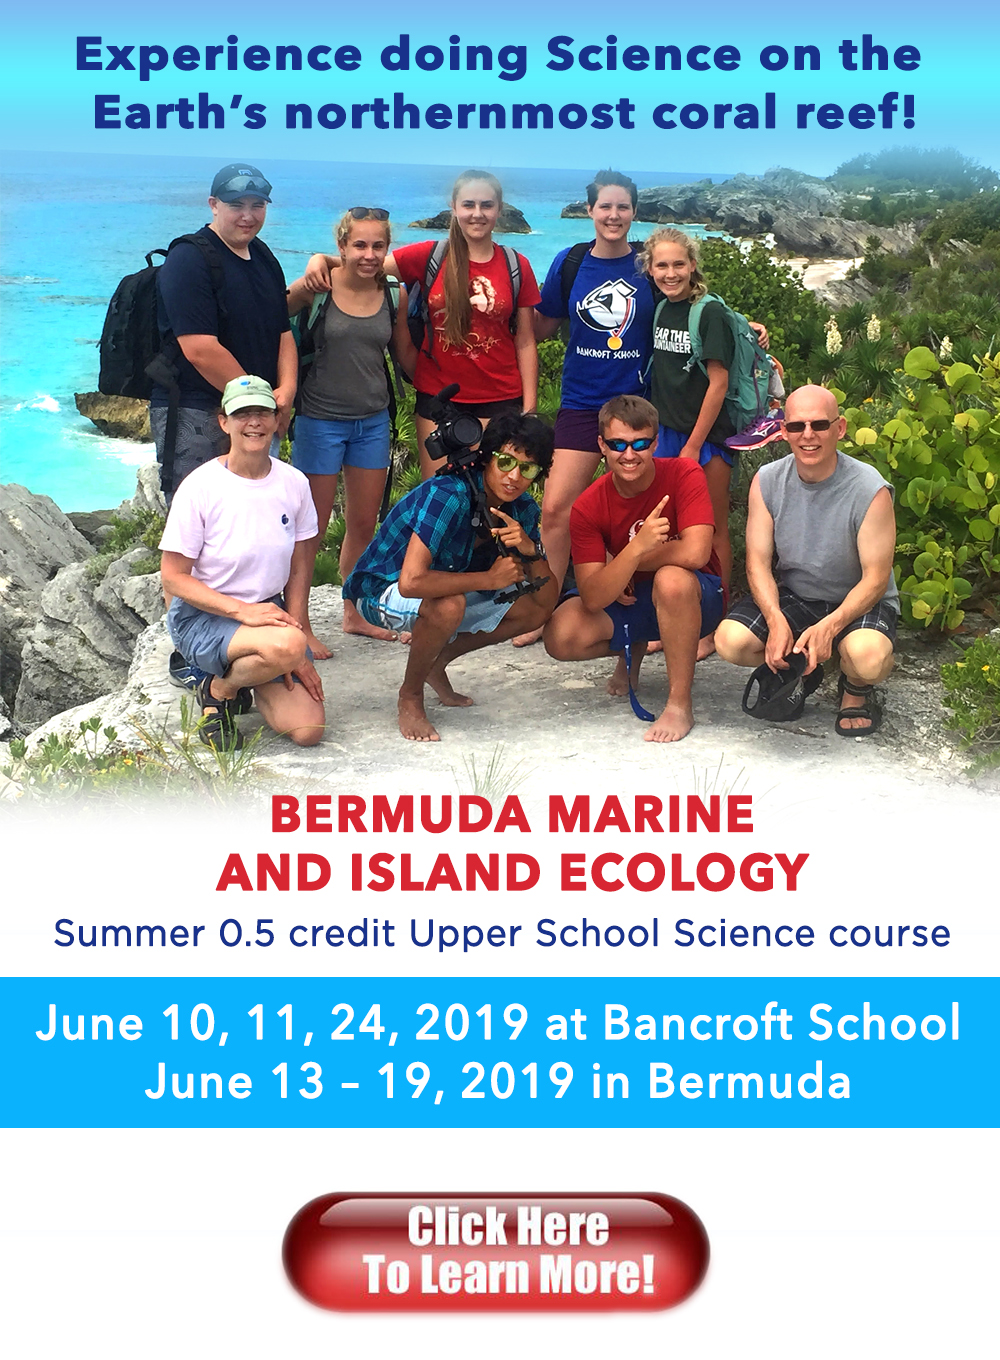 Bermuda Marine and Island Ecology